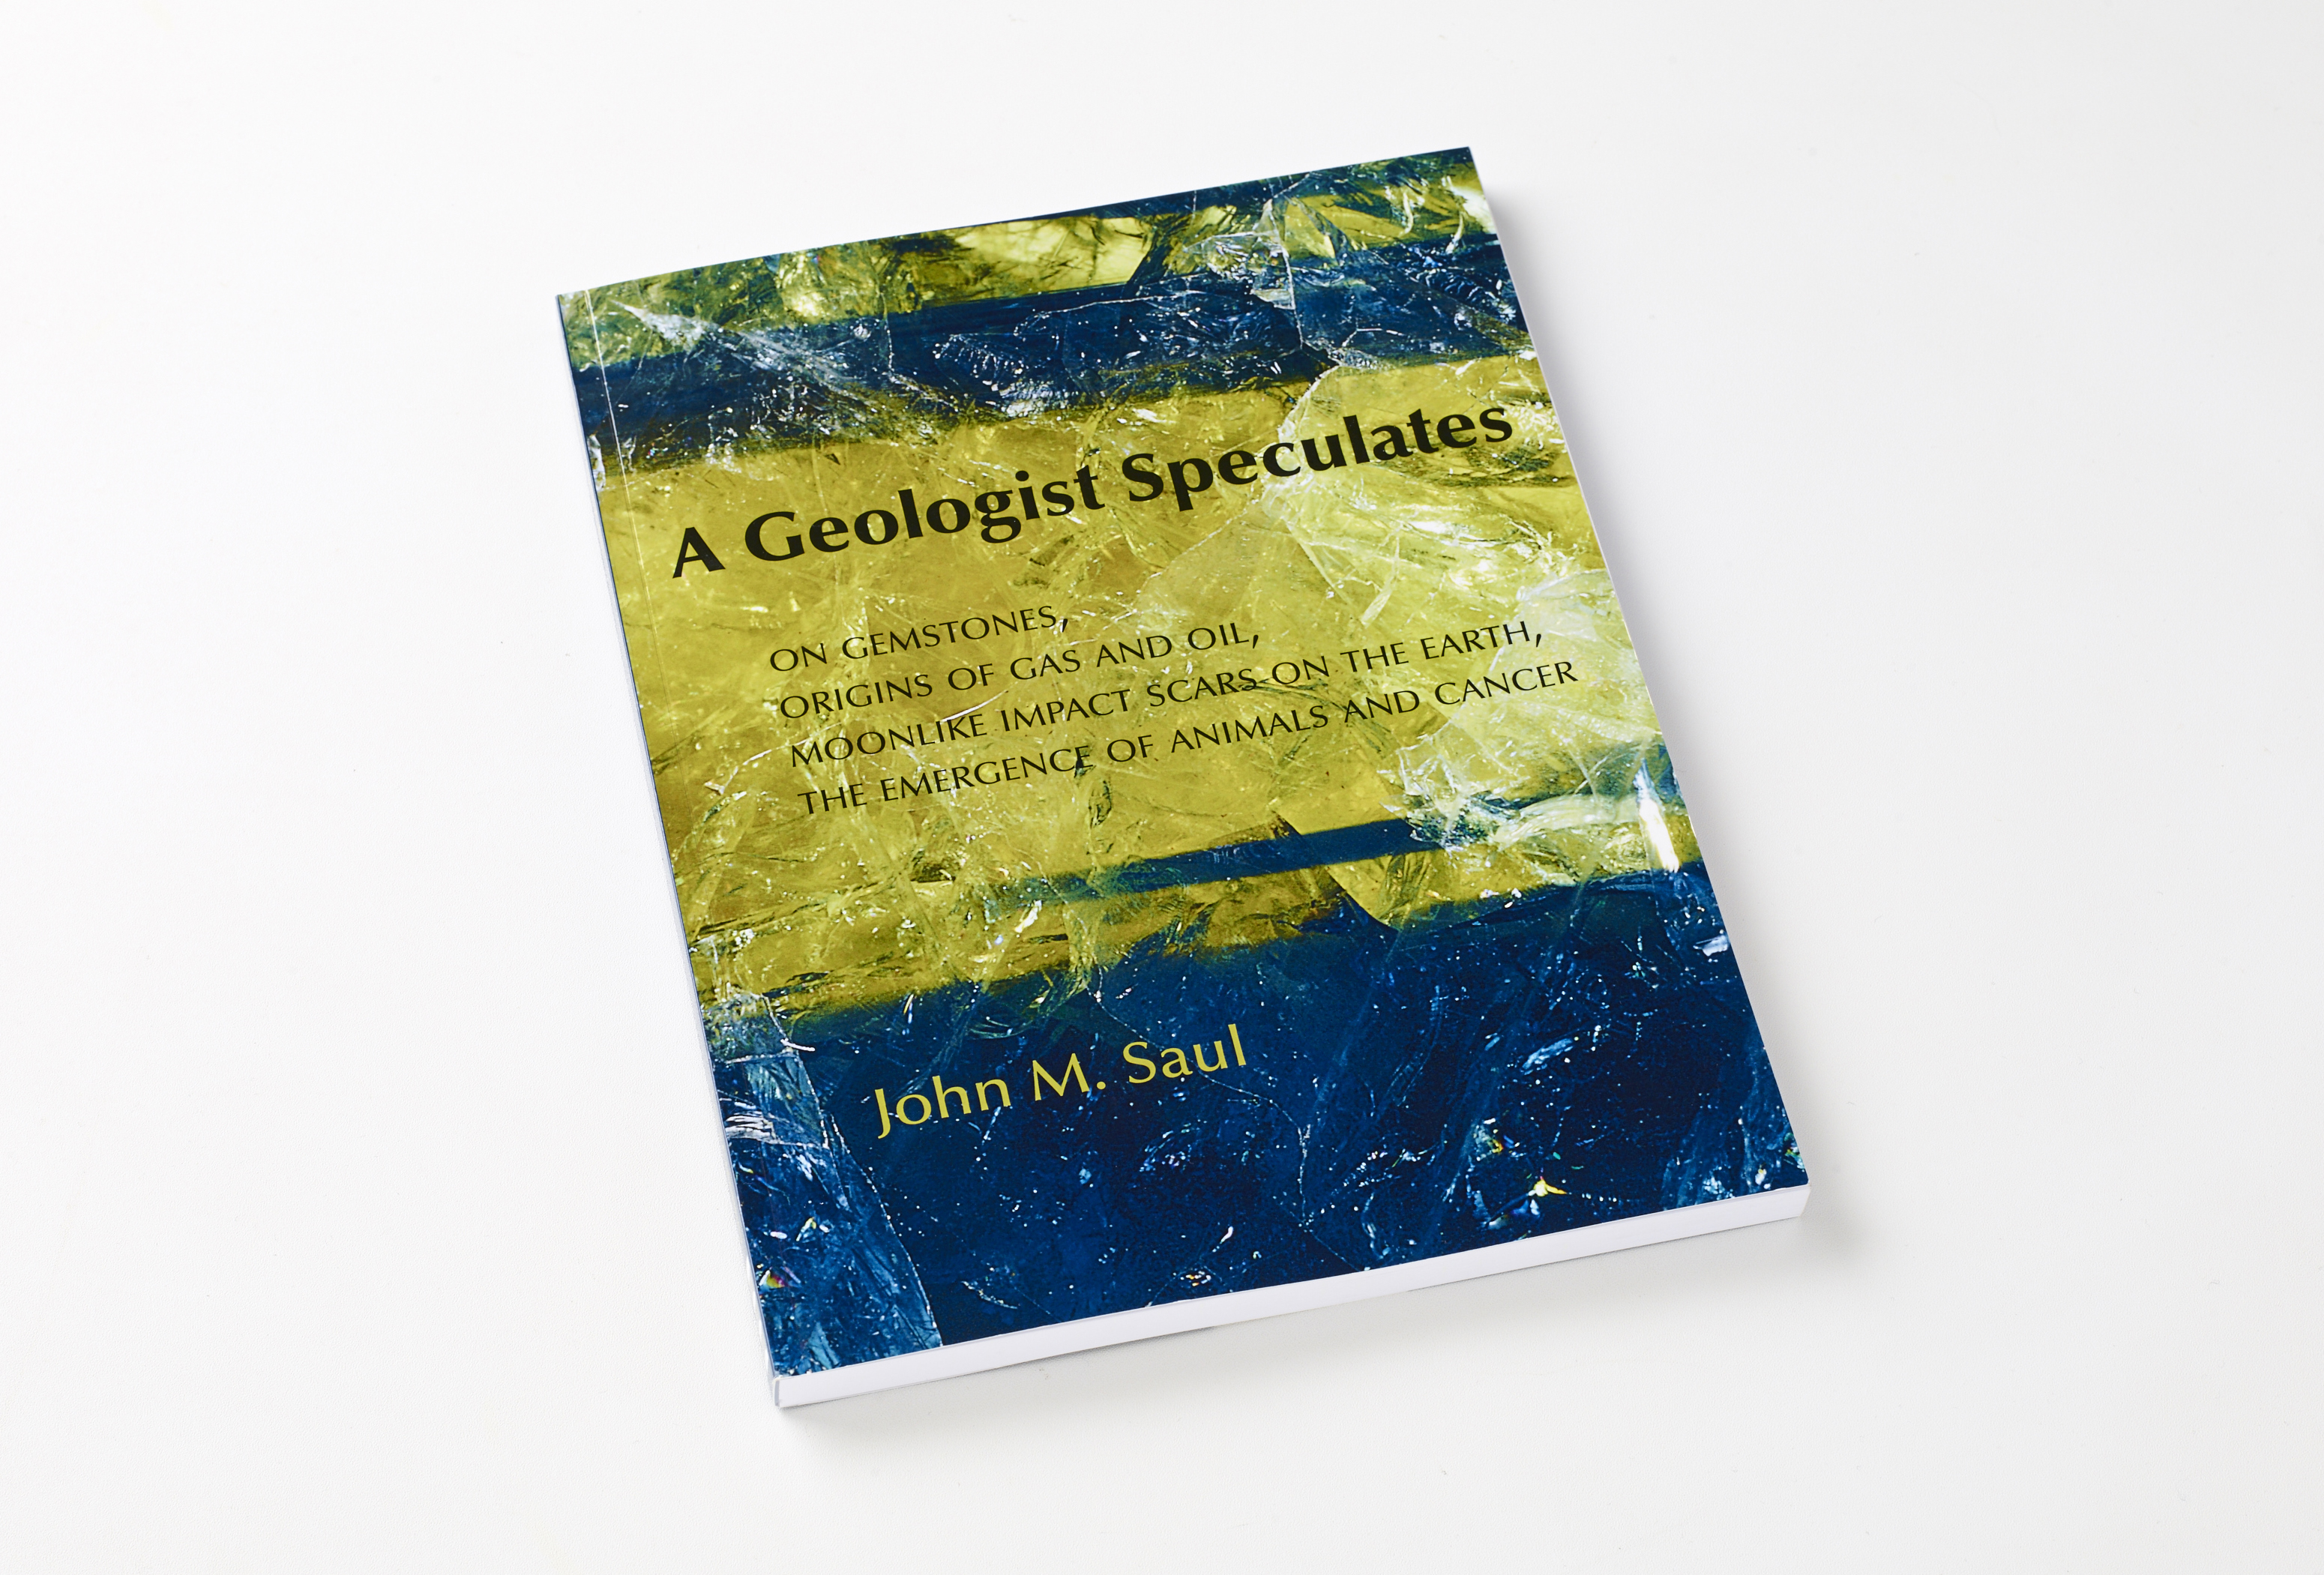 A Geologist speculates